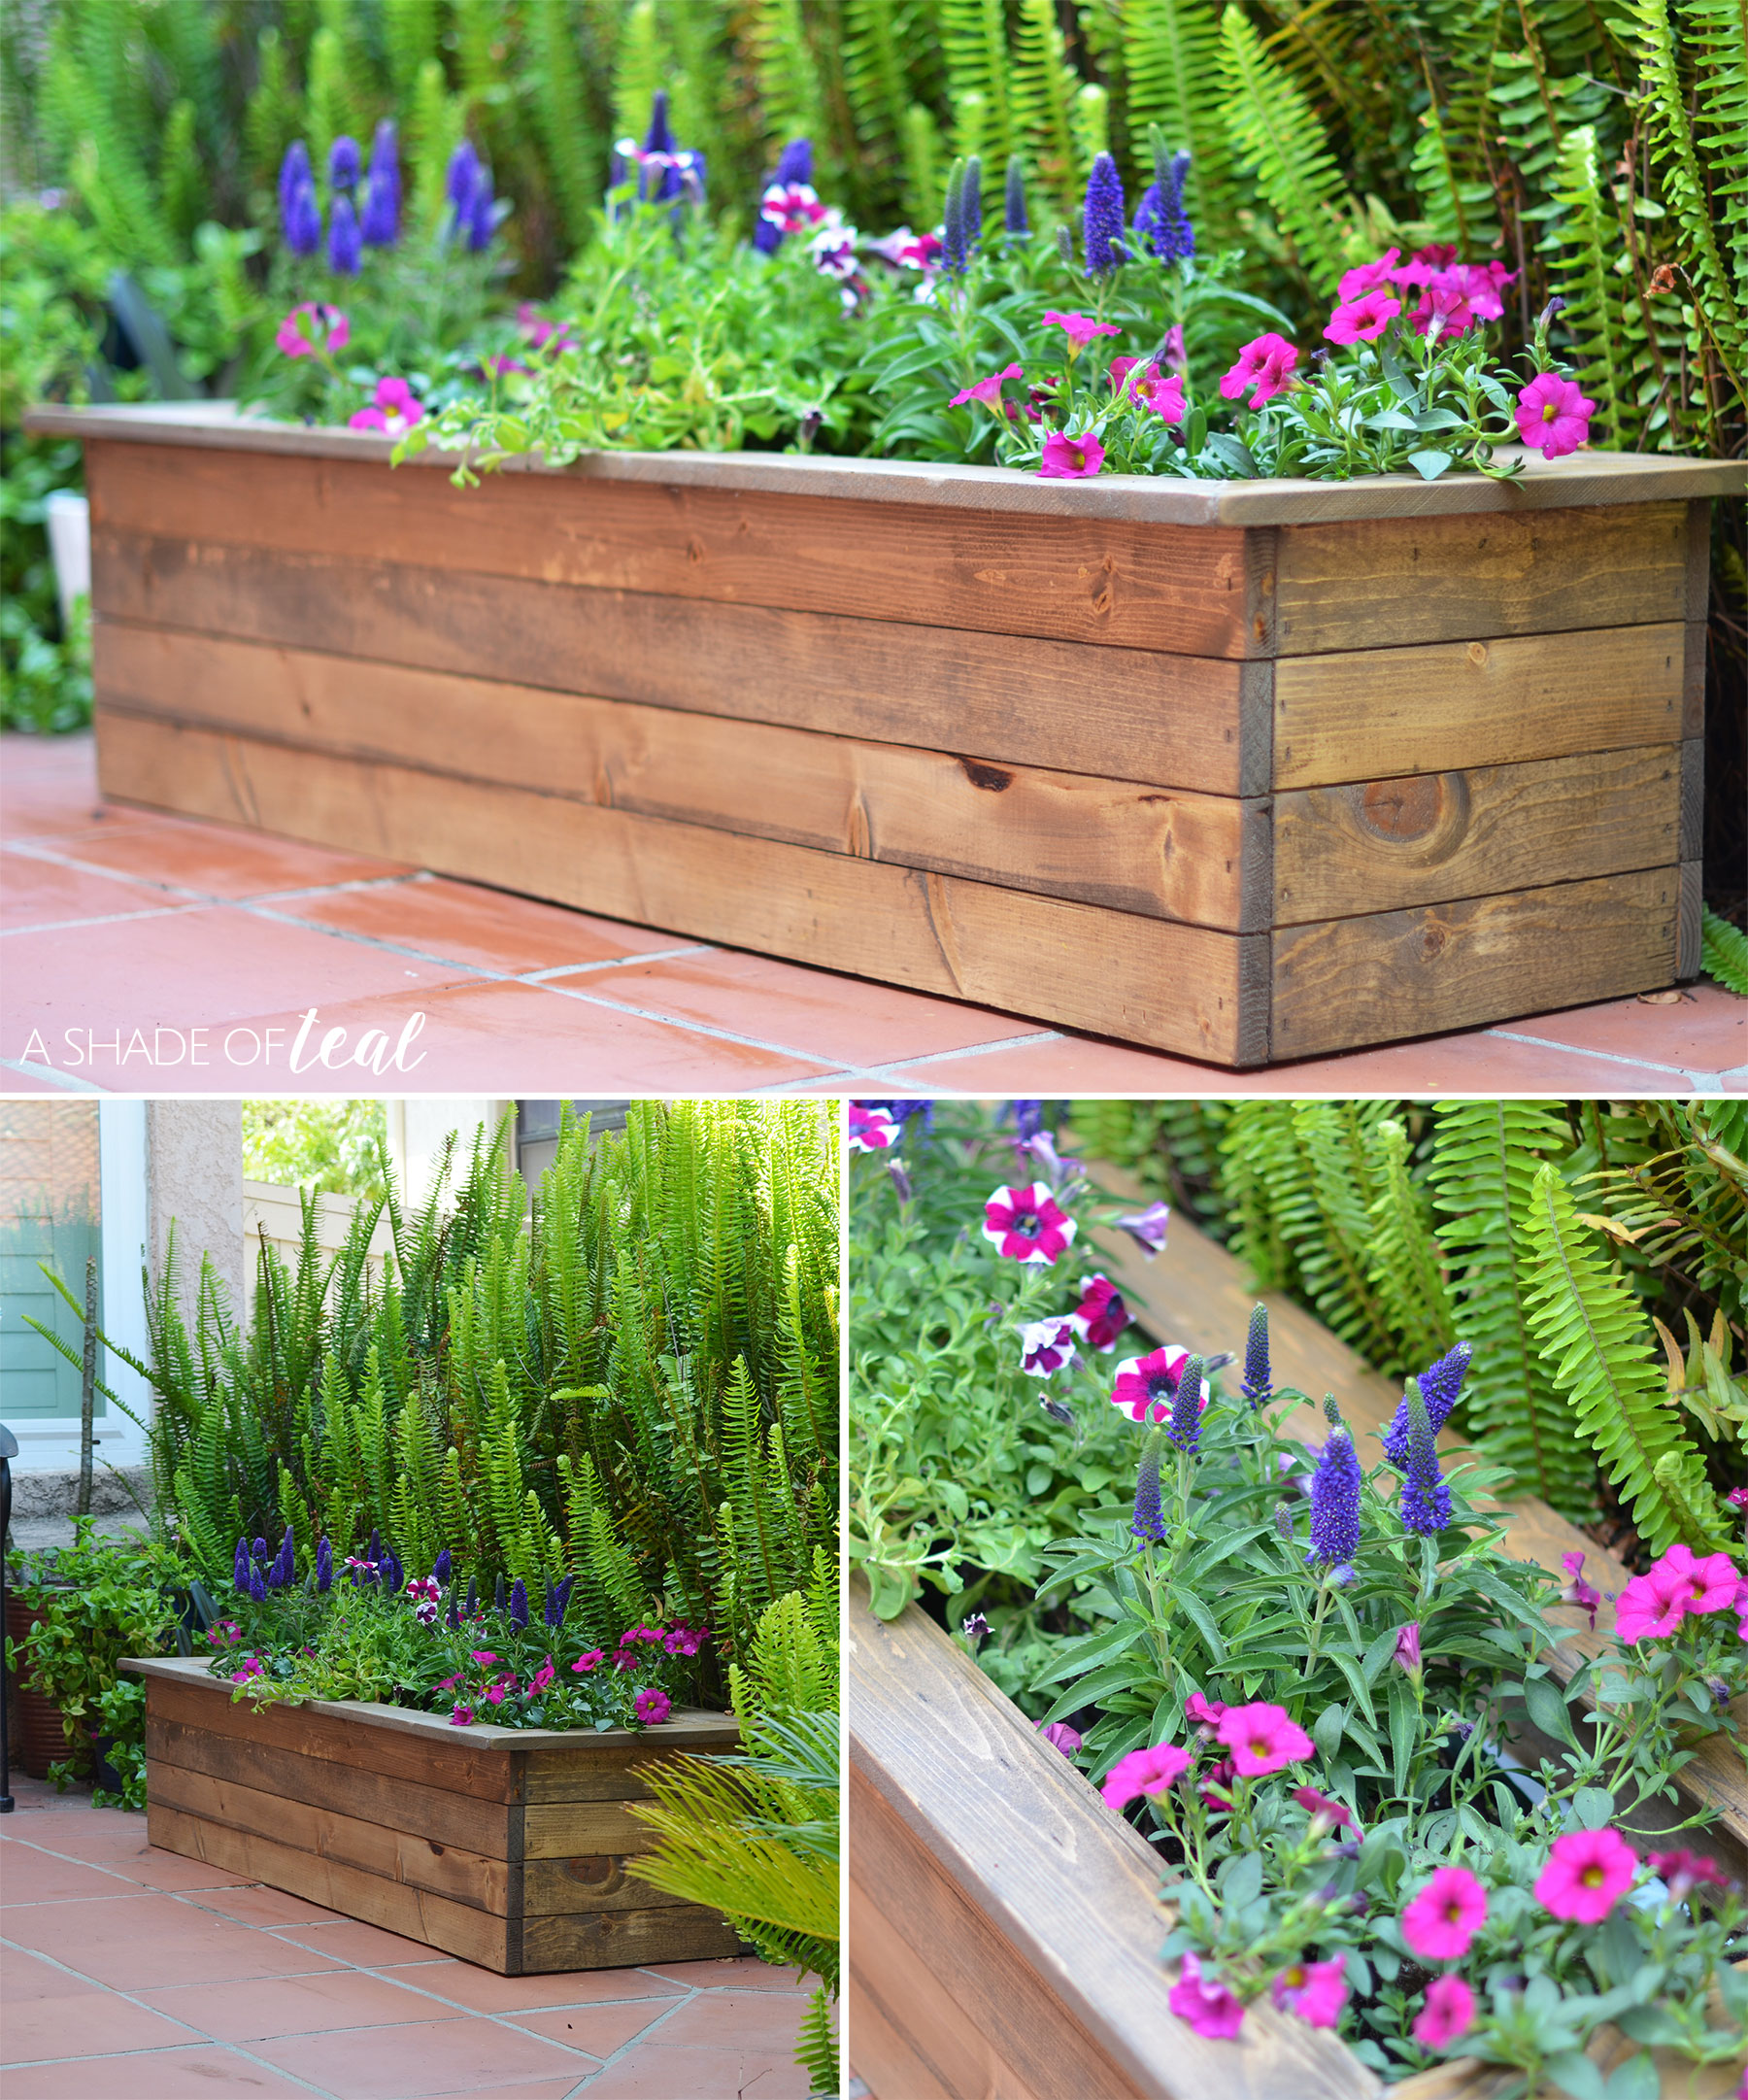 porch update how to make a flower box with monrovia flowers. Black Bedroom Furniture Sets. Home Design Ideas